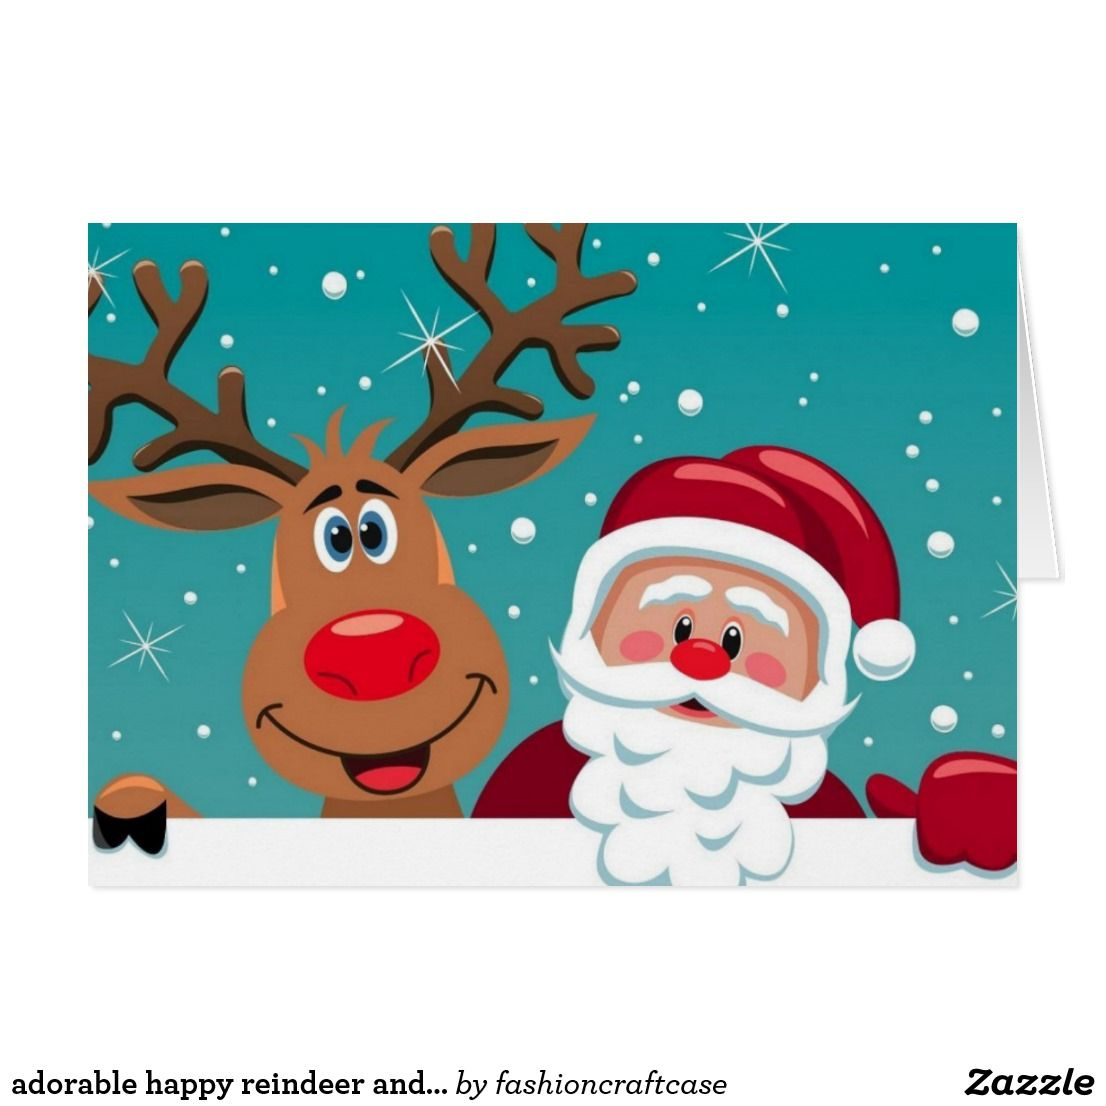 adorable happy reindeer and Santa Claus Holiday Card | Zazzle.com #reindeerfoodrecipe